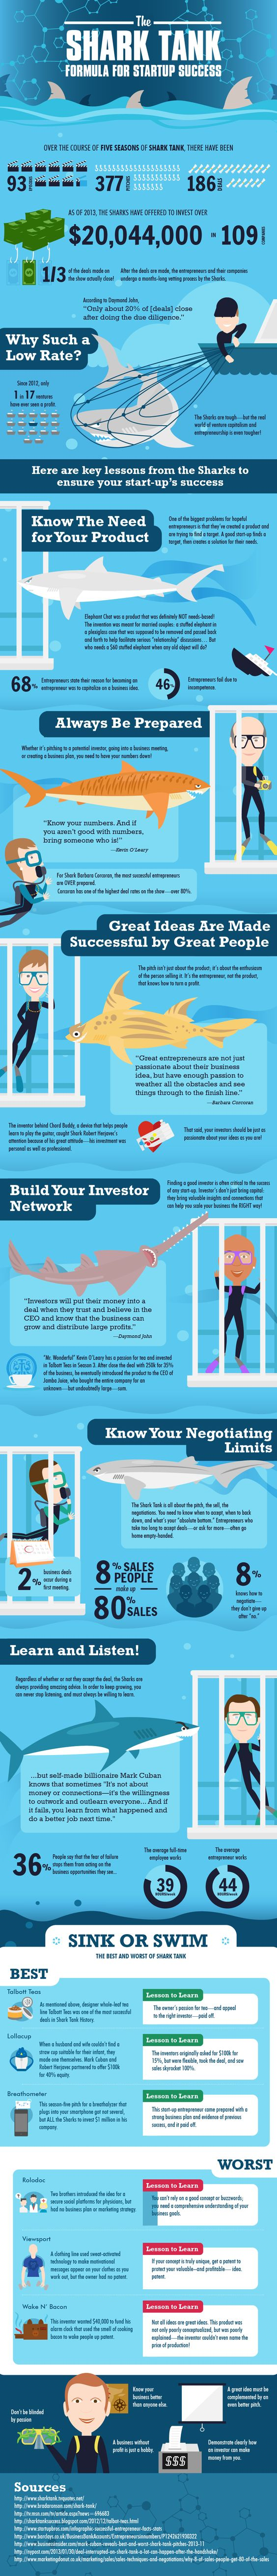 10 Valuable Lessons From Shark Tank For Startup Success